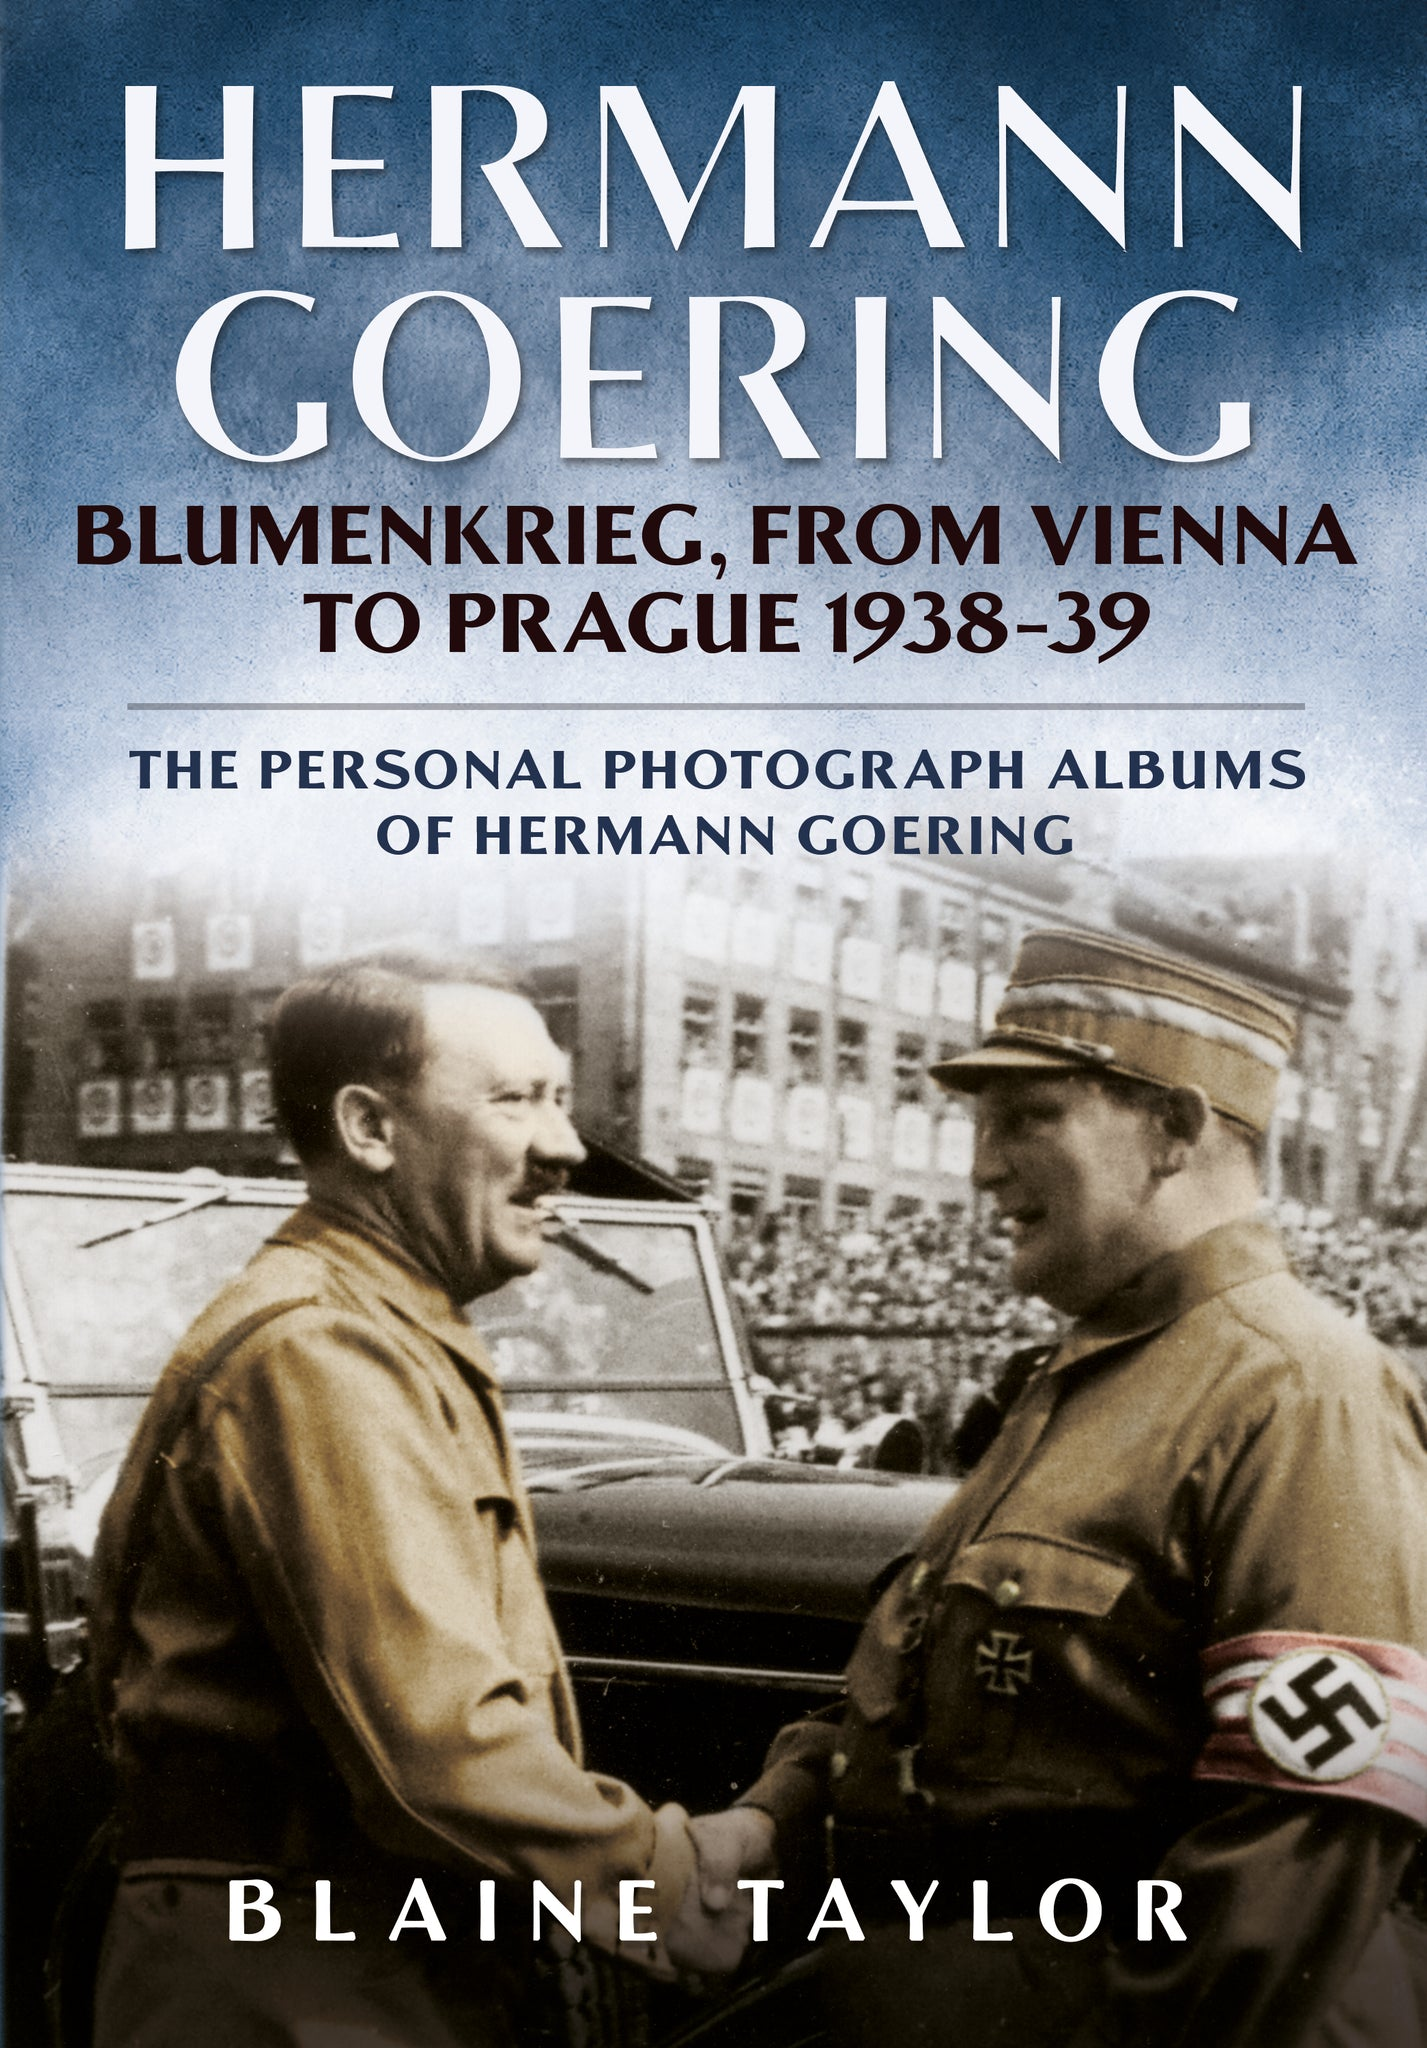 Hermann Goering Blumenkrieg, from Vienna to Prague 1938-39